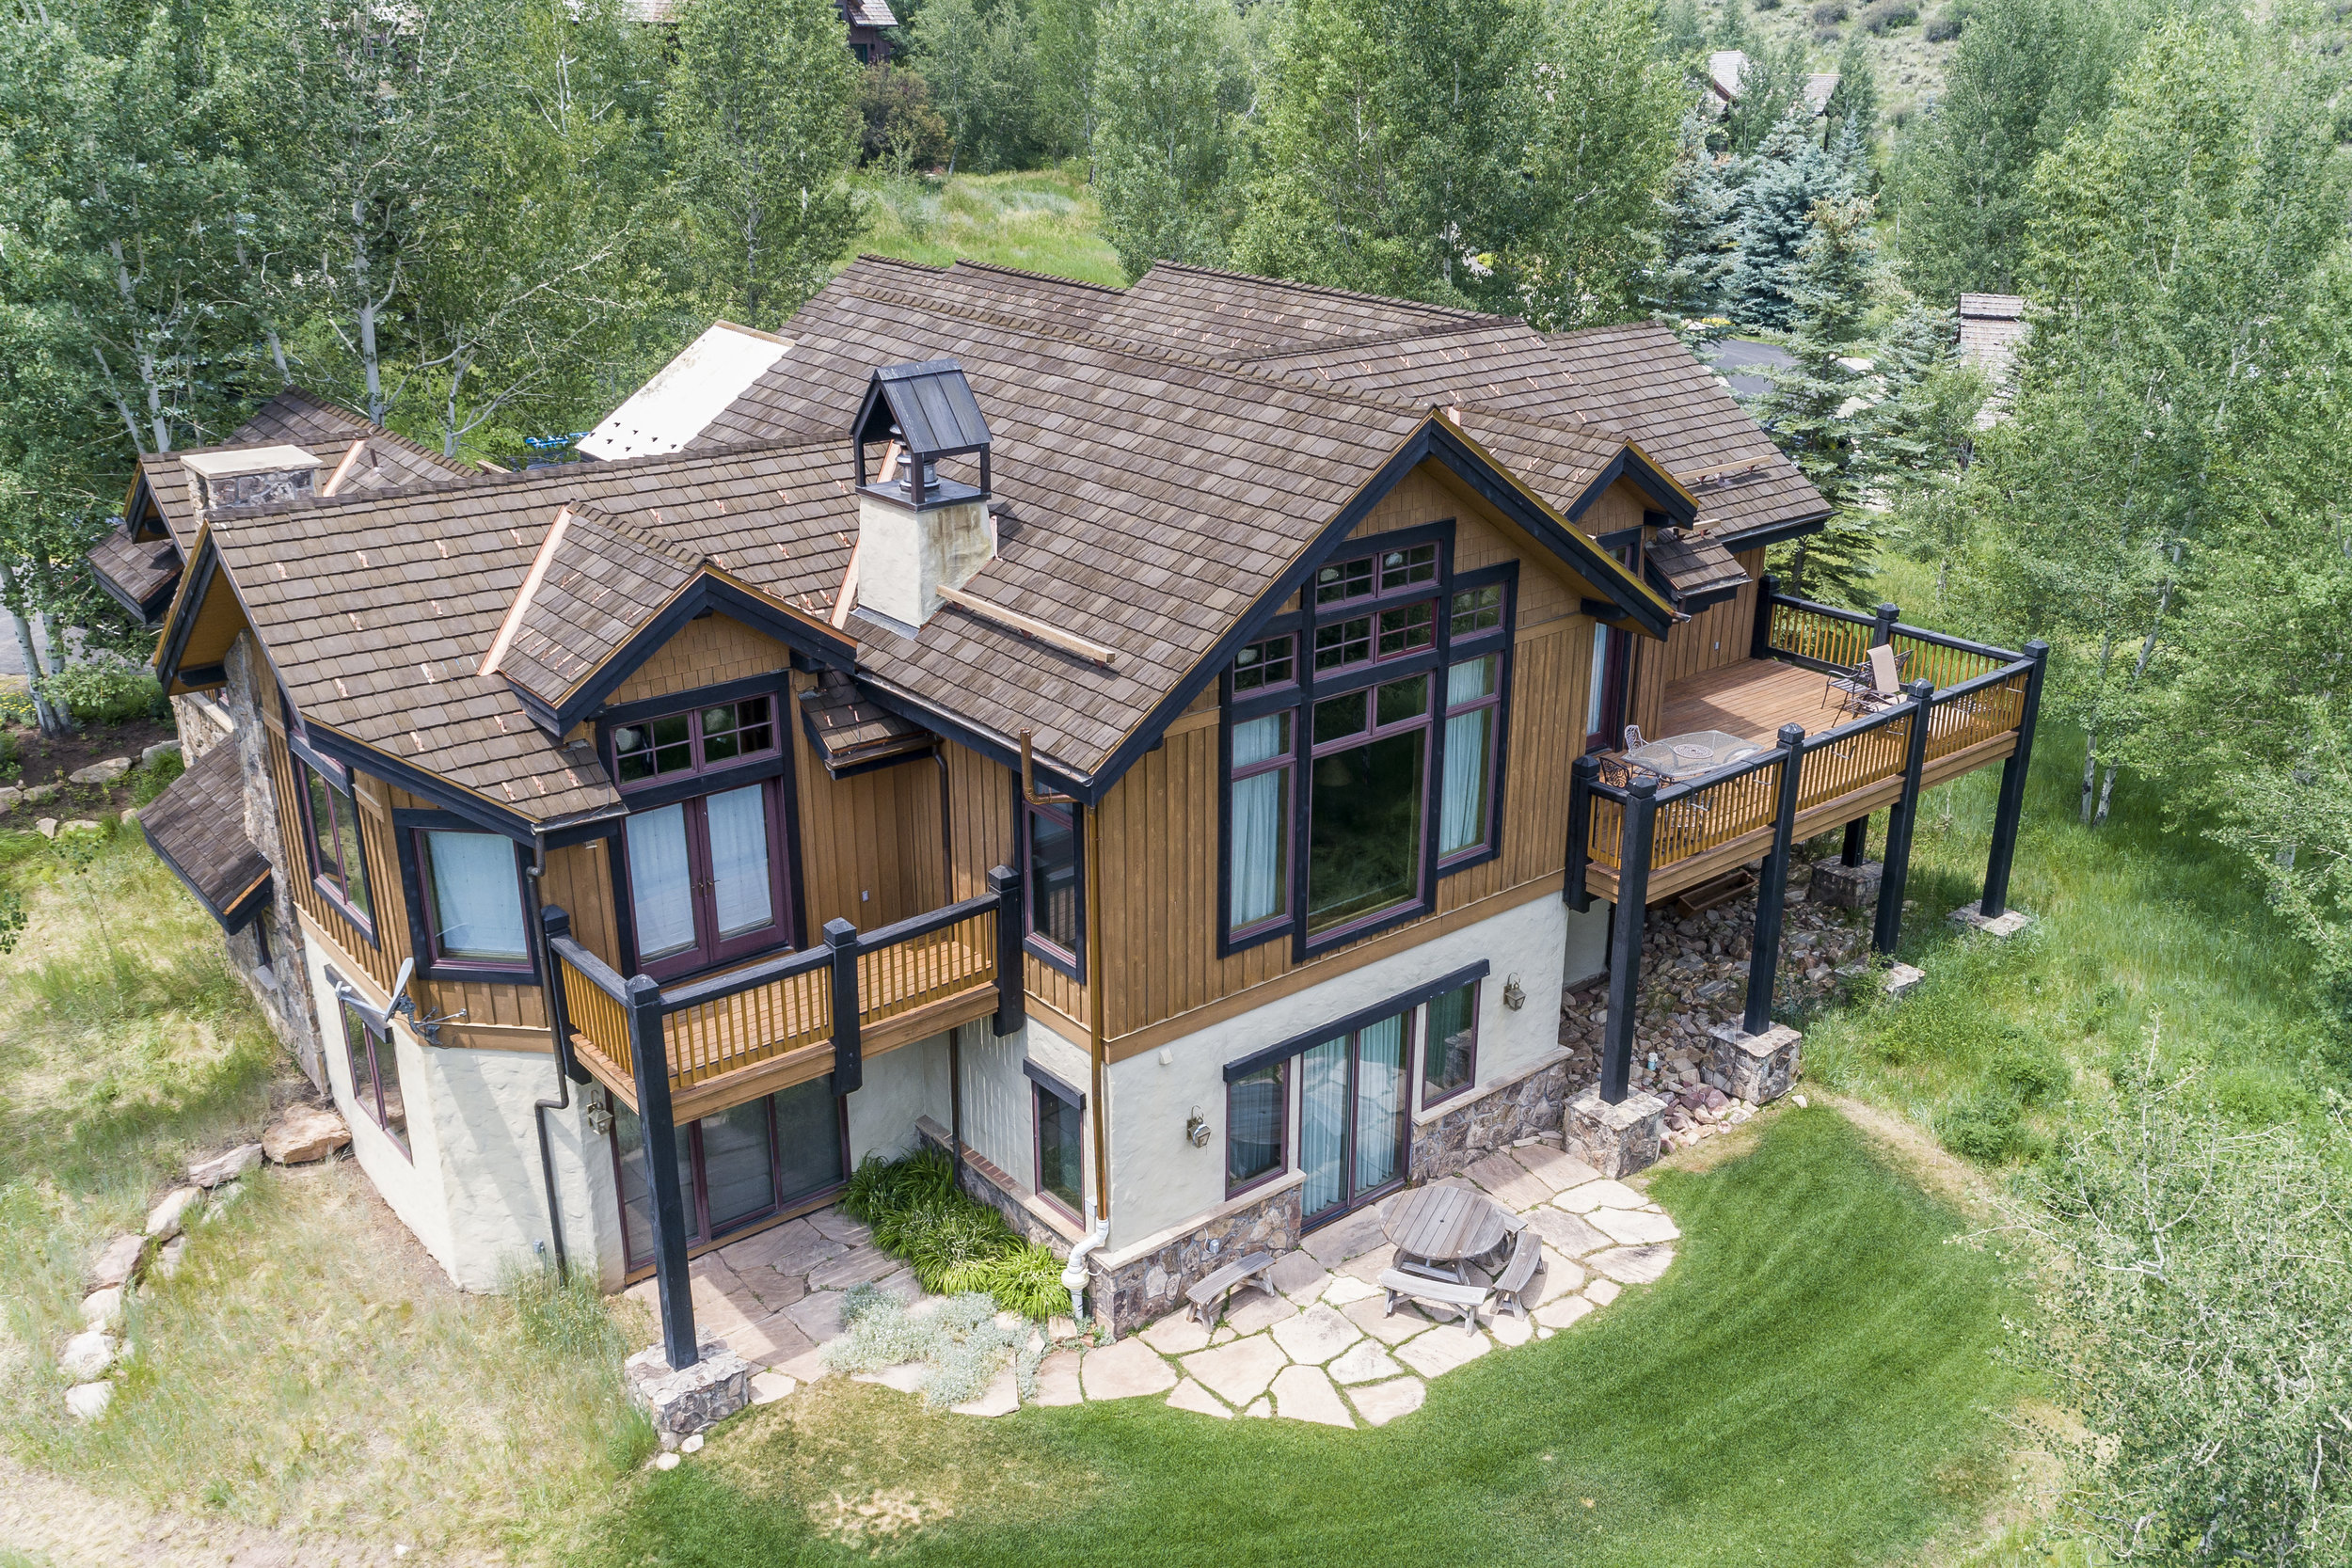 cedur-roof-located-in-colorado-mountains-synthetic-roofing-material.jpg